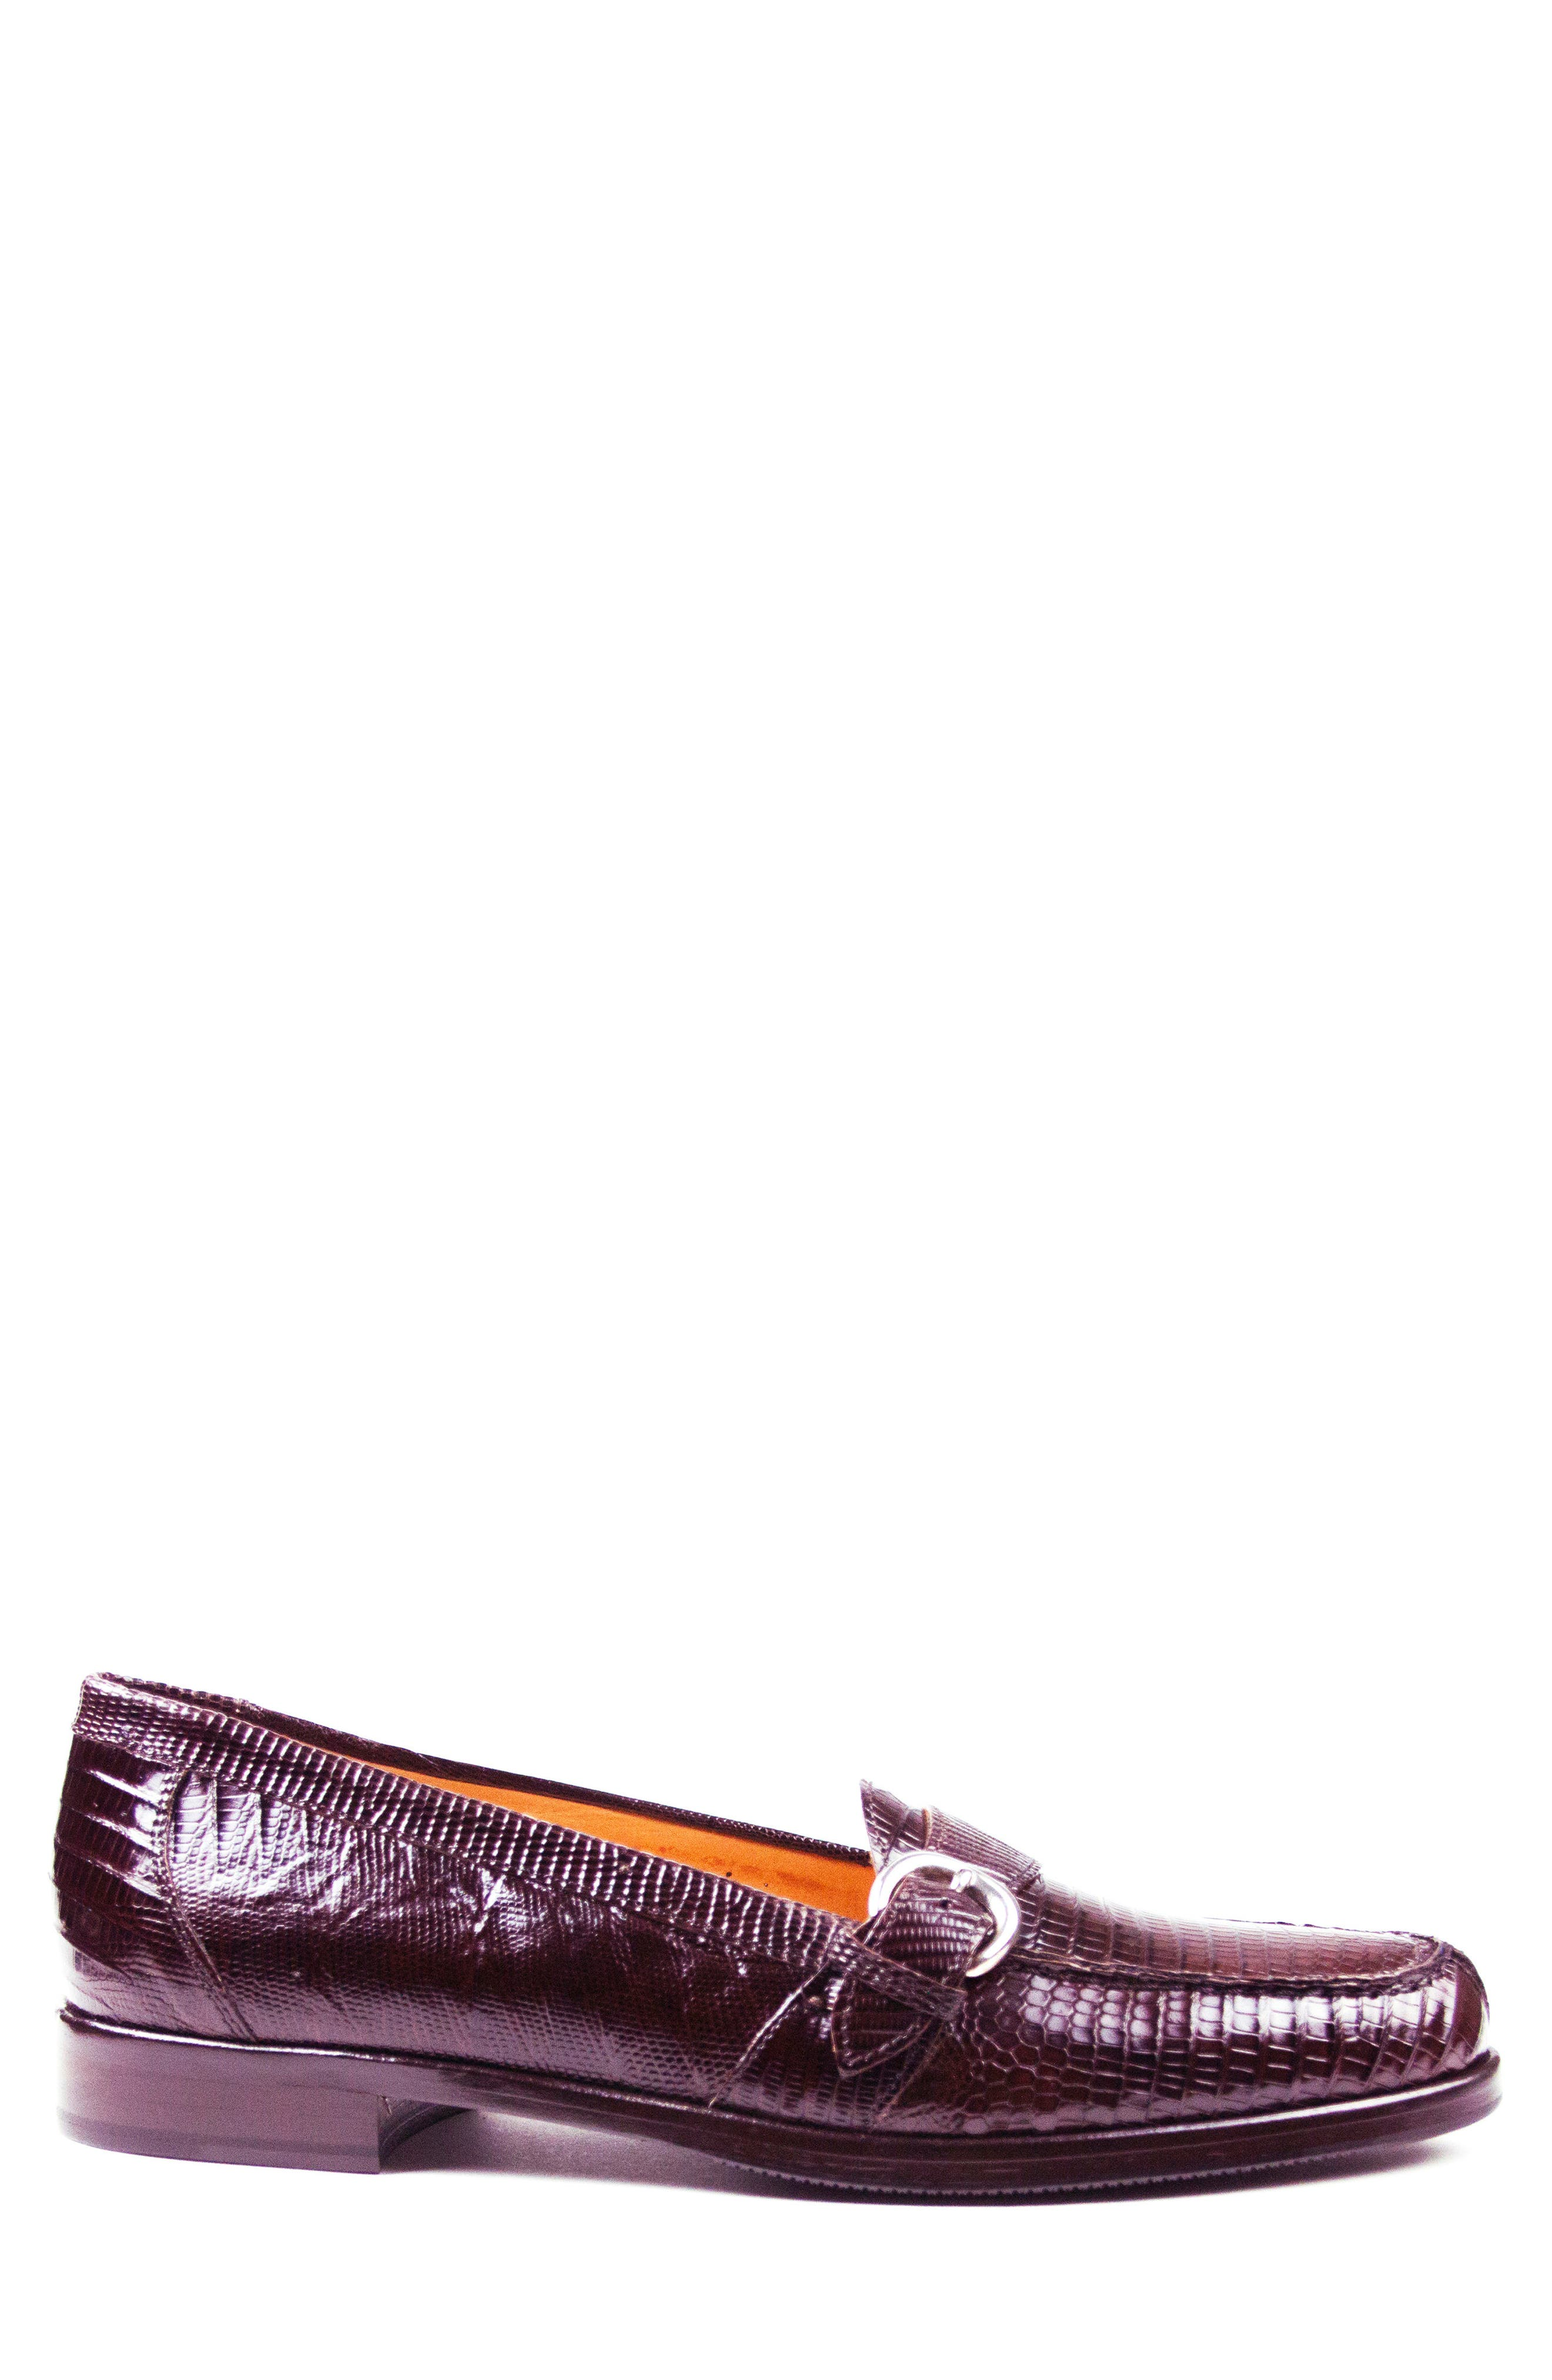 Orlando Teju Ostrich Loafer,                             Alternate thumbnail 6, color,